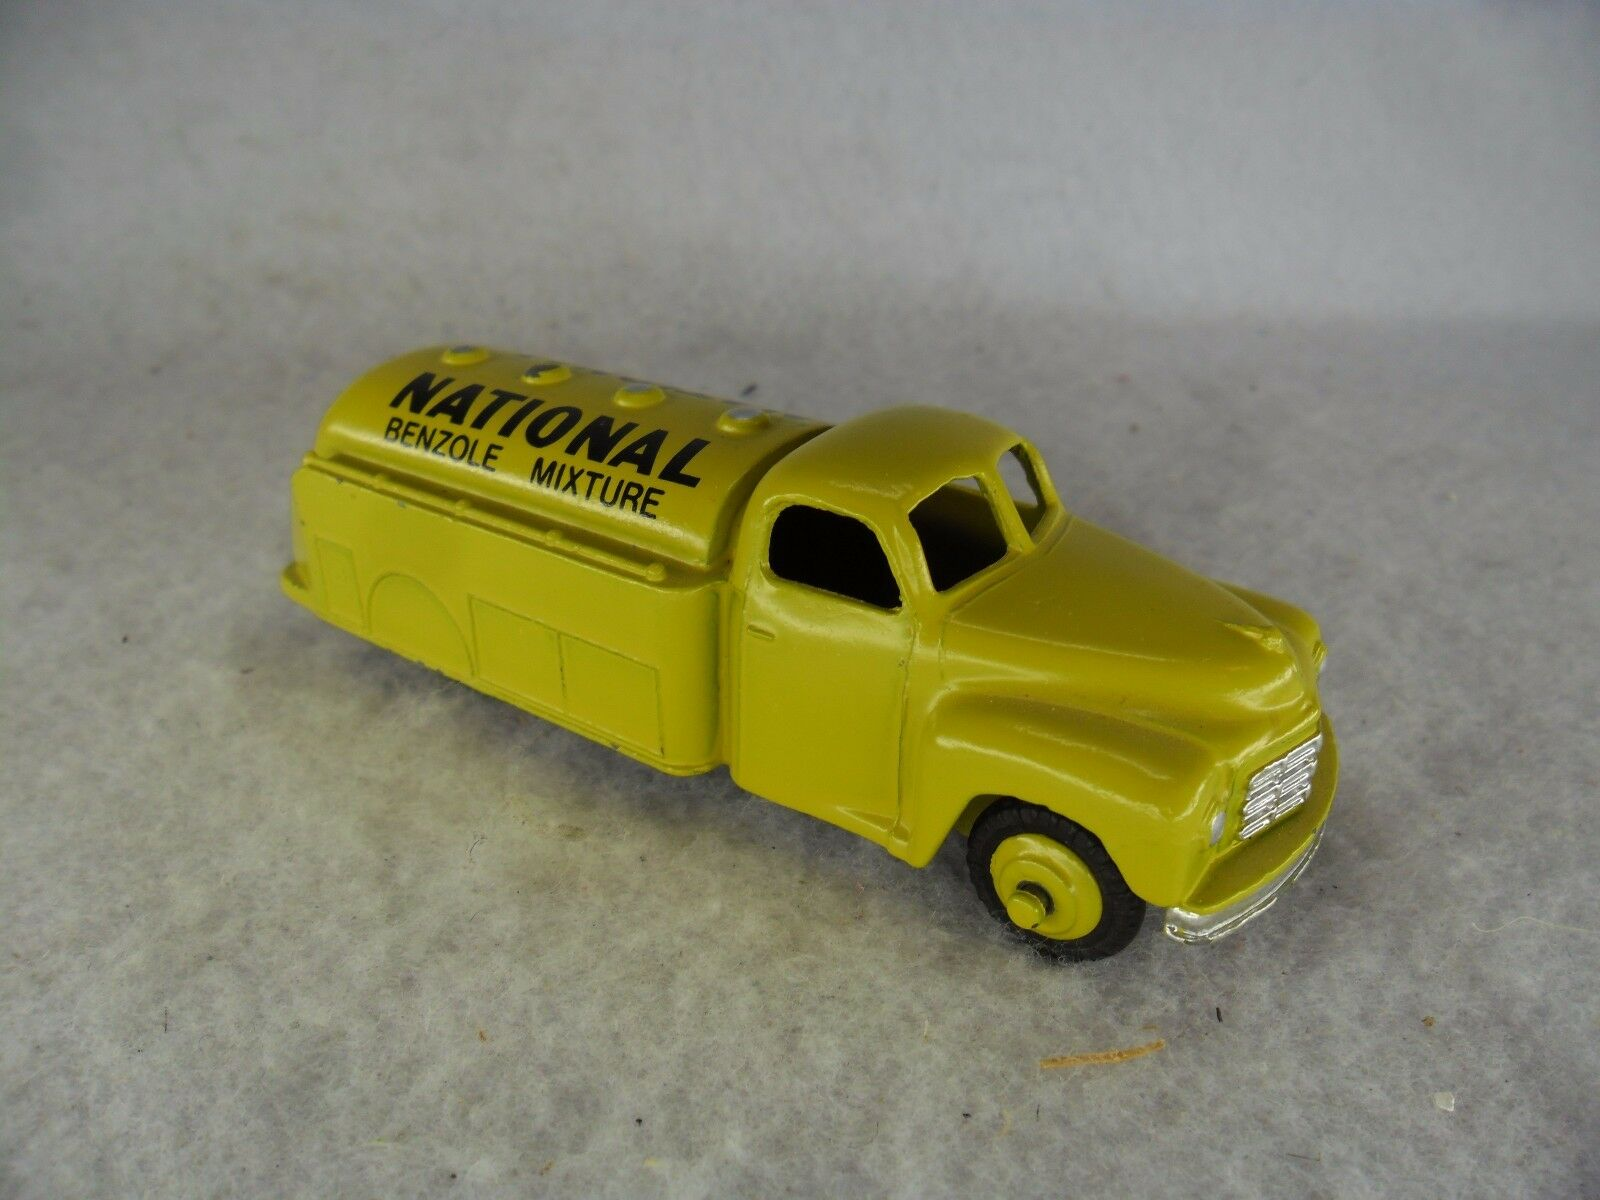 Dinky Toys Studebaker National Benzole Mixture Oil Tanker